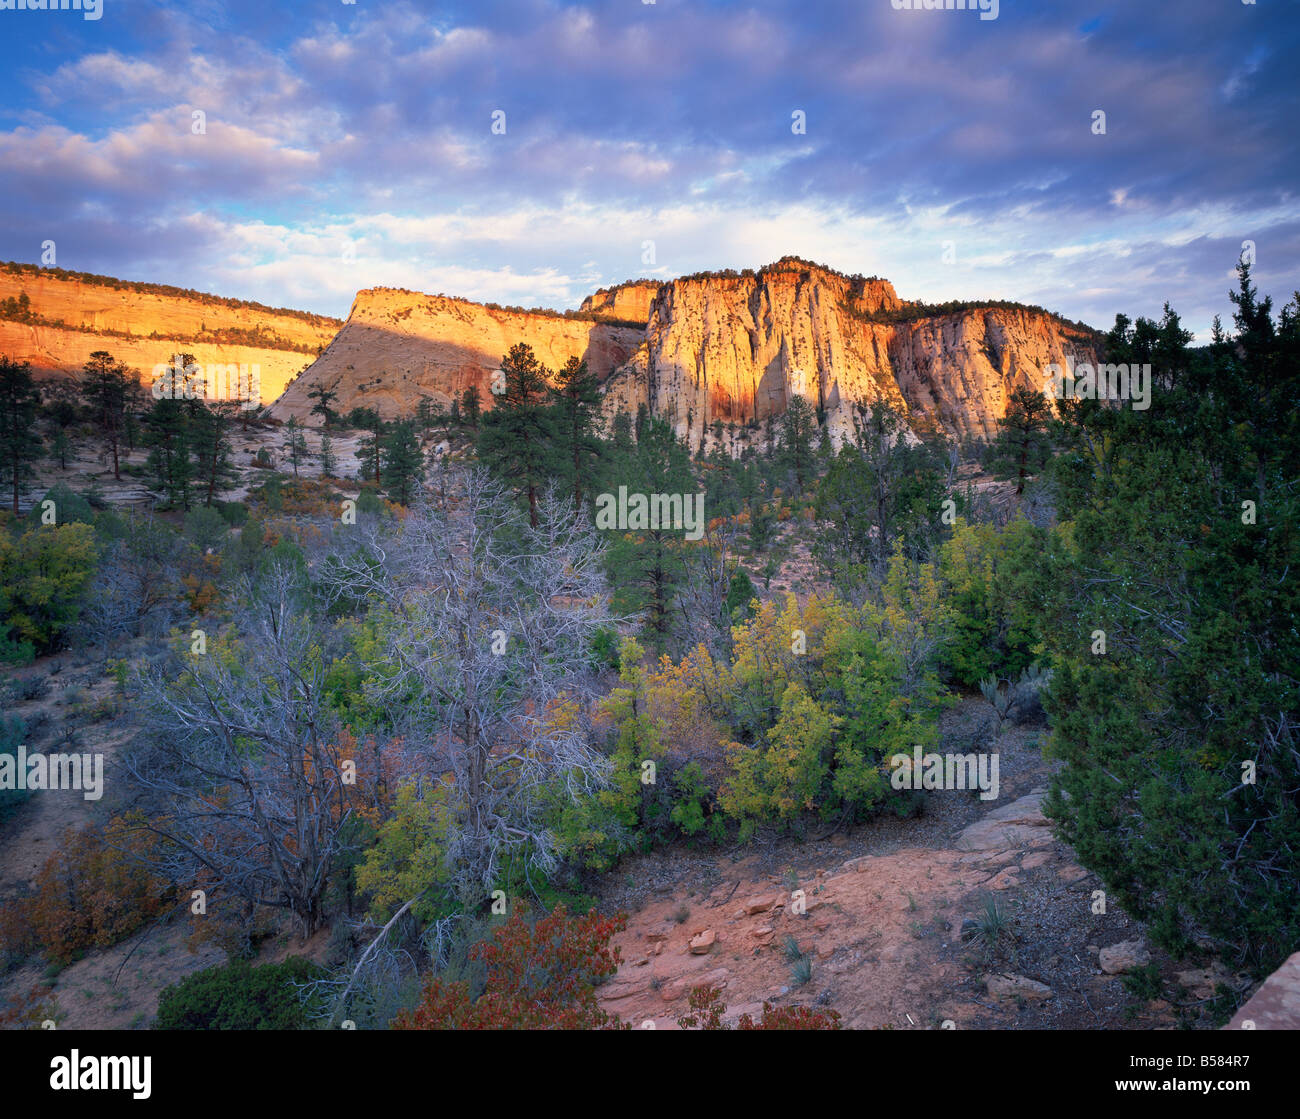 First light on the hills, Zion National Park, Utah, United States of America, North America - Stock Image